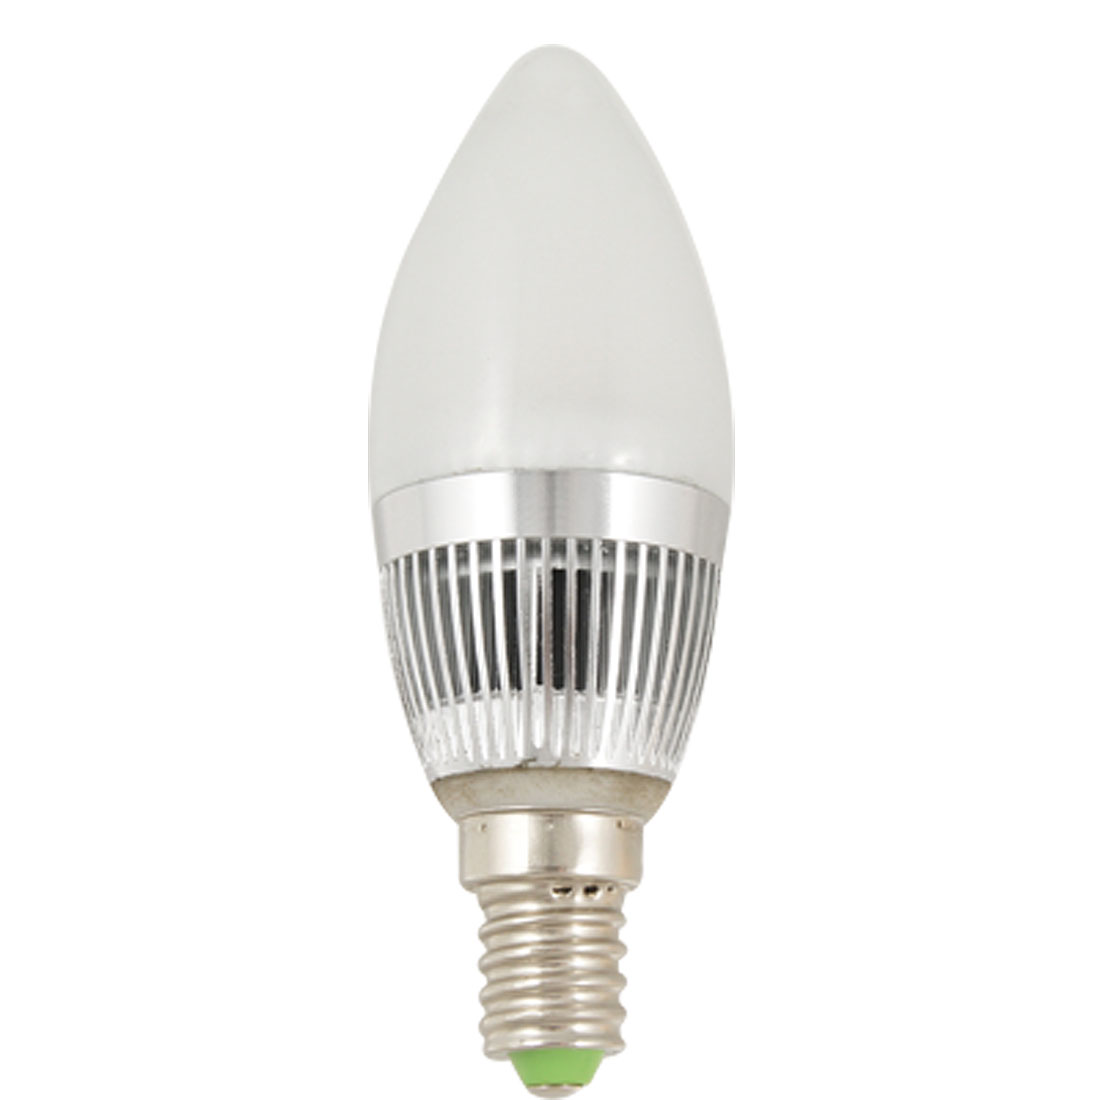 Home Energy Saving Bulb E14 Screw Base Yellow LED Light 1x1W